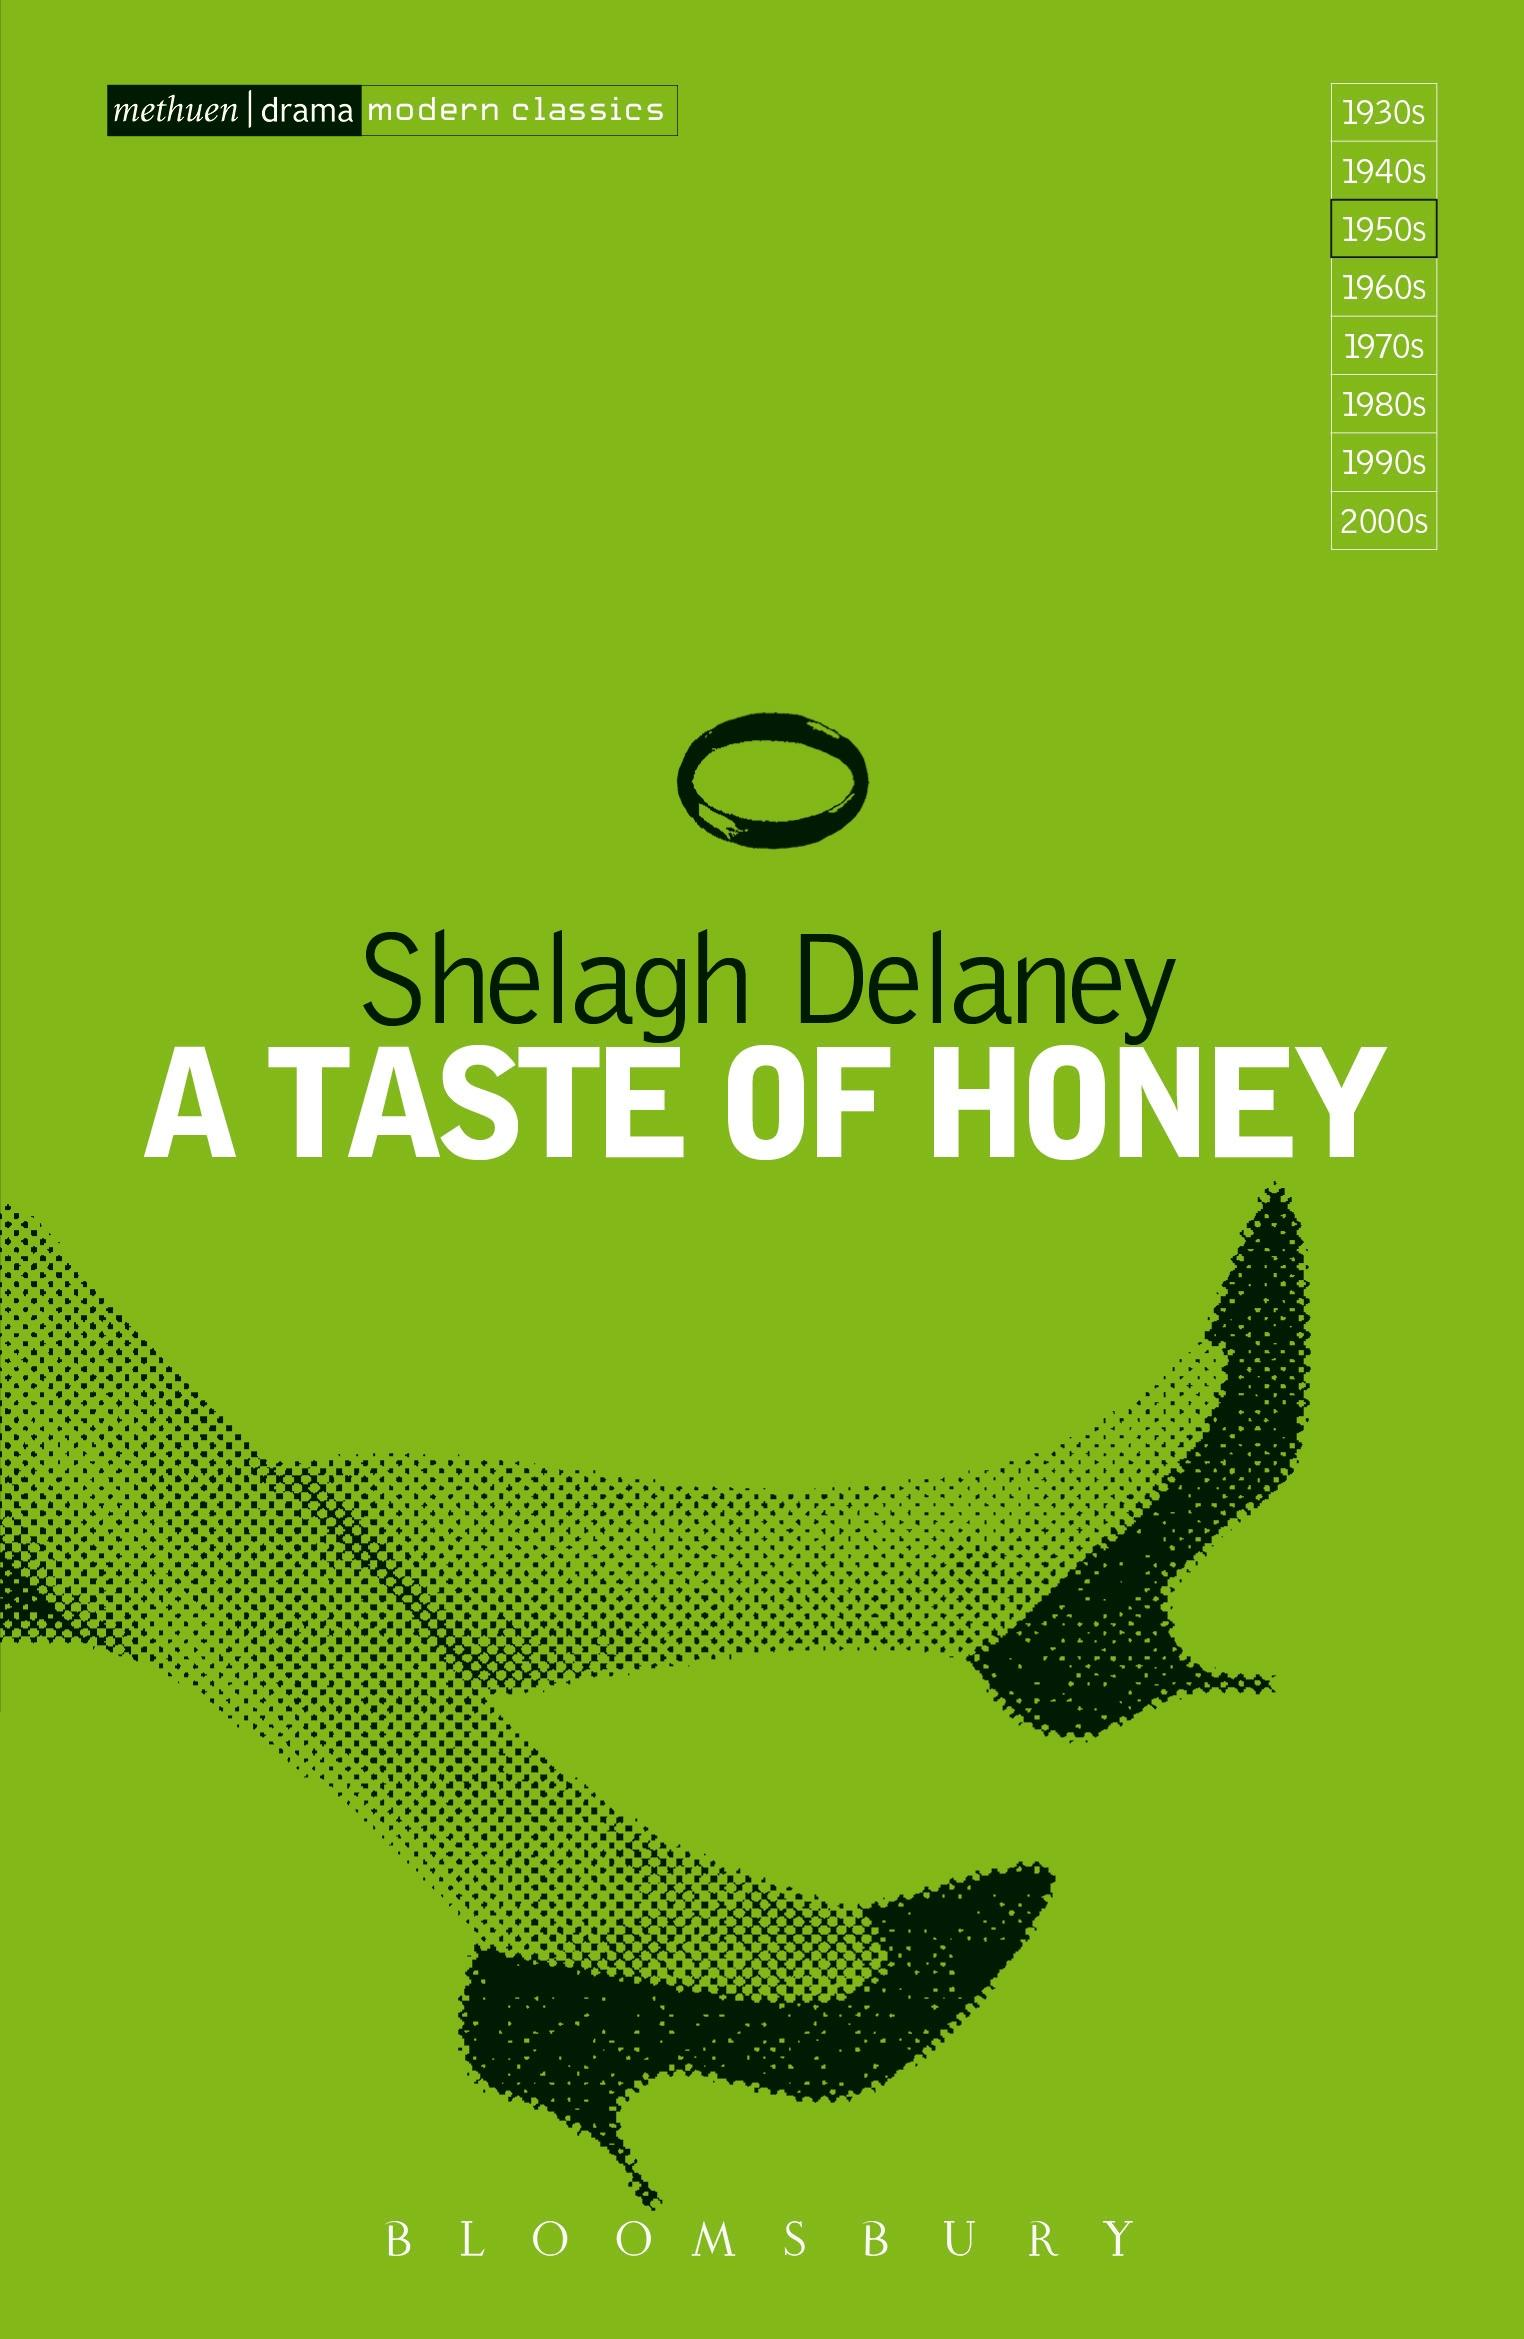 comparative study a taste of honey Compare and contrast the mother-daughter relationship in 'a taste of honey' by shelagh delaney and 'a mother's fondness comparative study post 1900 coursework.